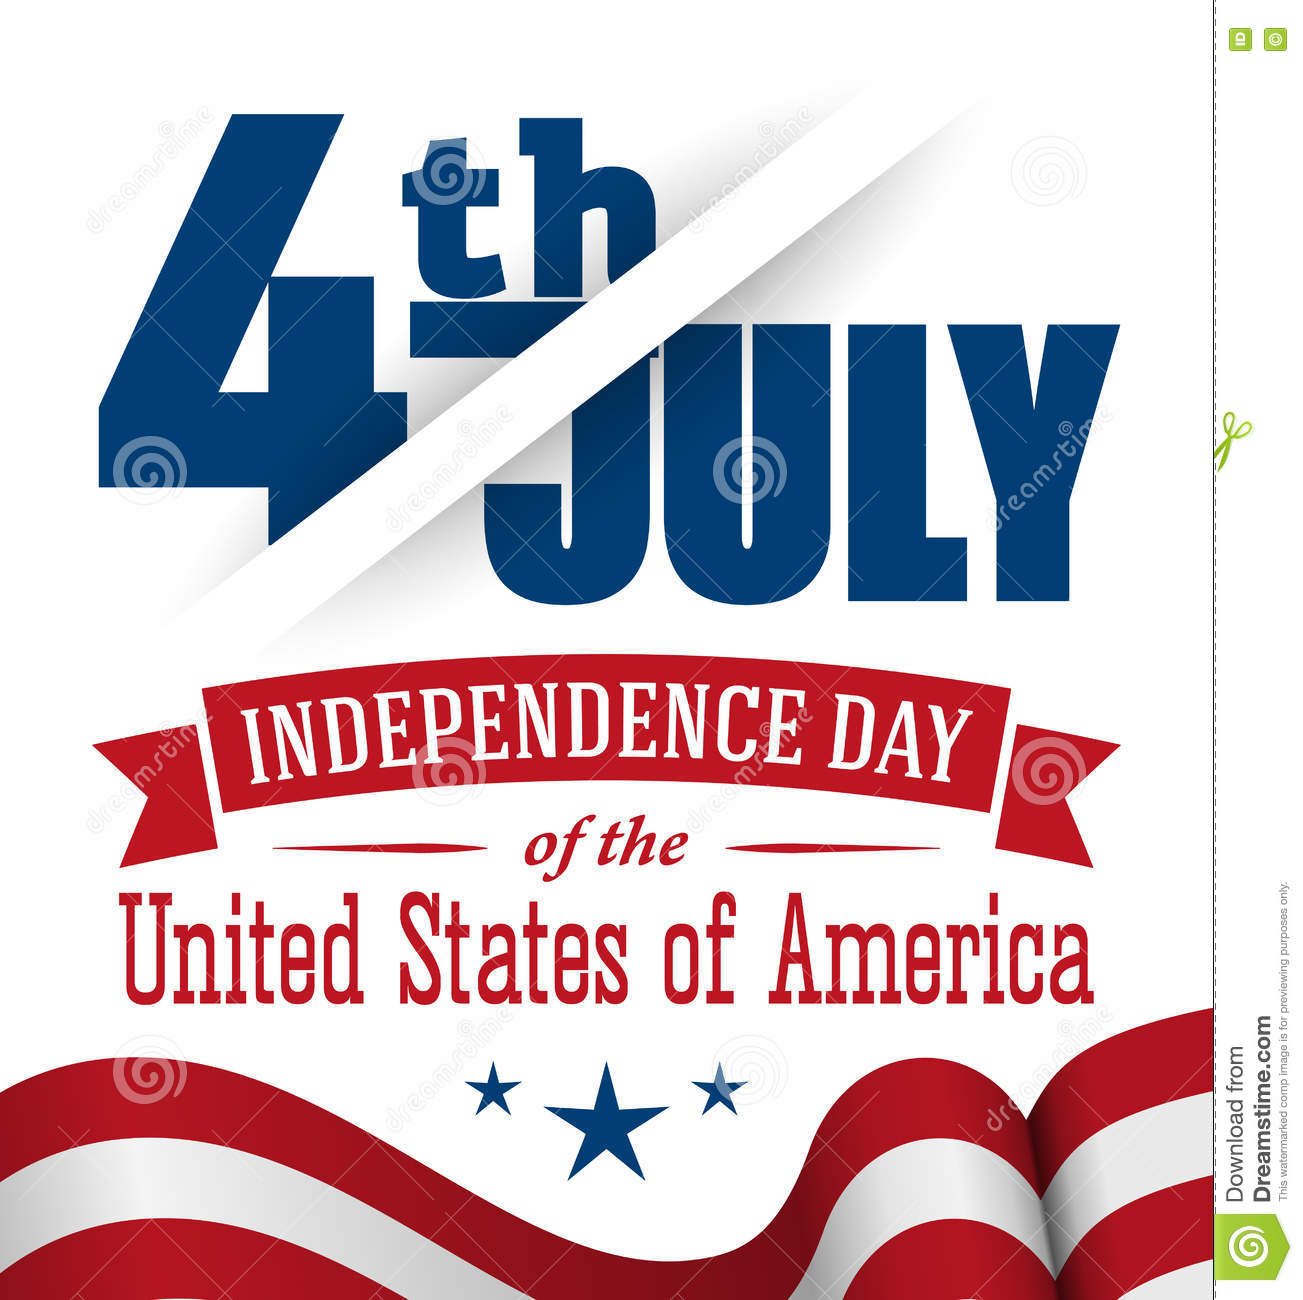 fourth of july the day when americans had independence Ten facts about american independence day celebrated on the 4th july.